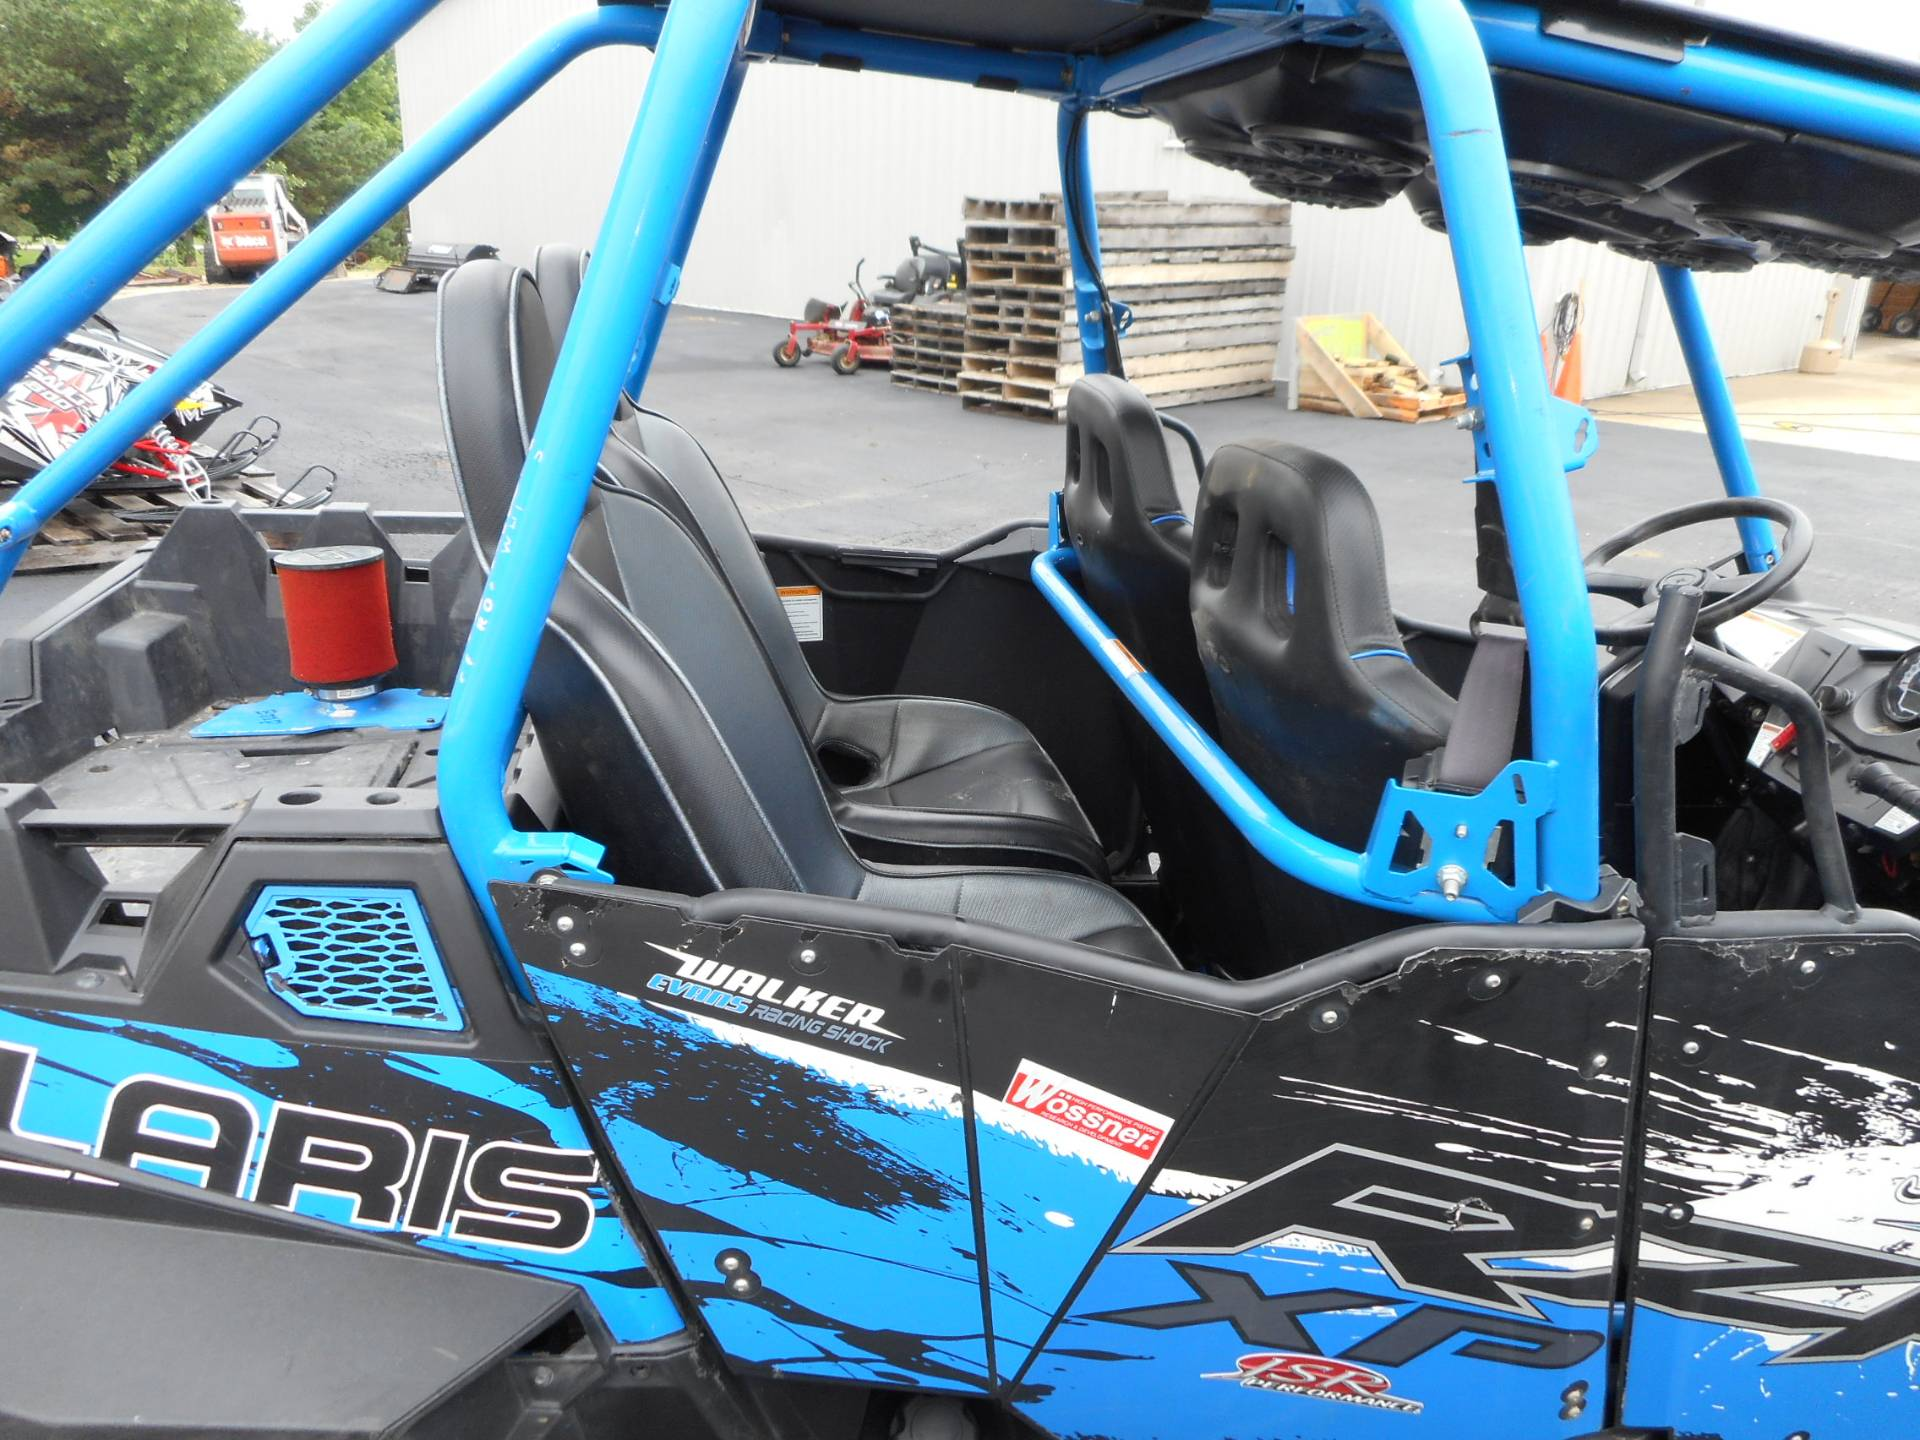 2013 Polaris RZR XP 900 H.O. Jagged X Edition 6